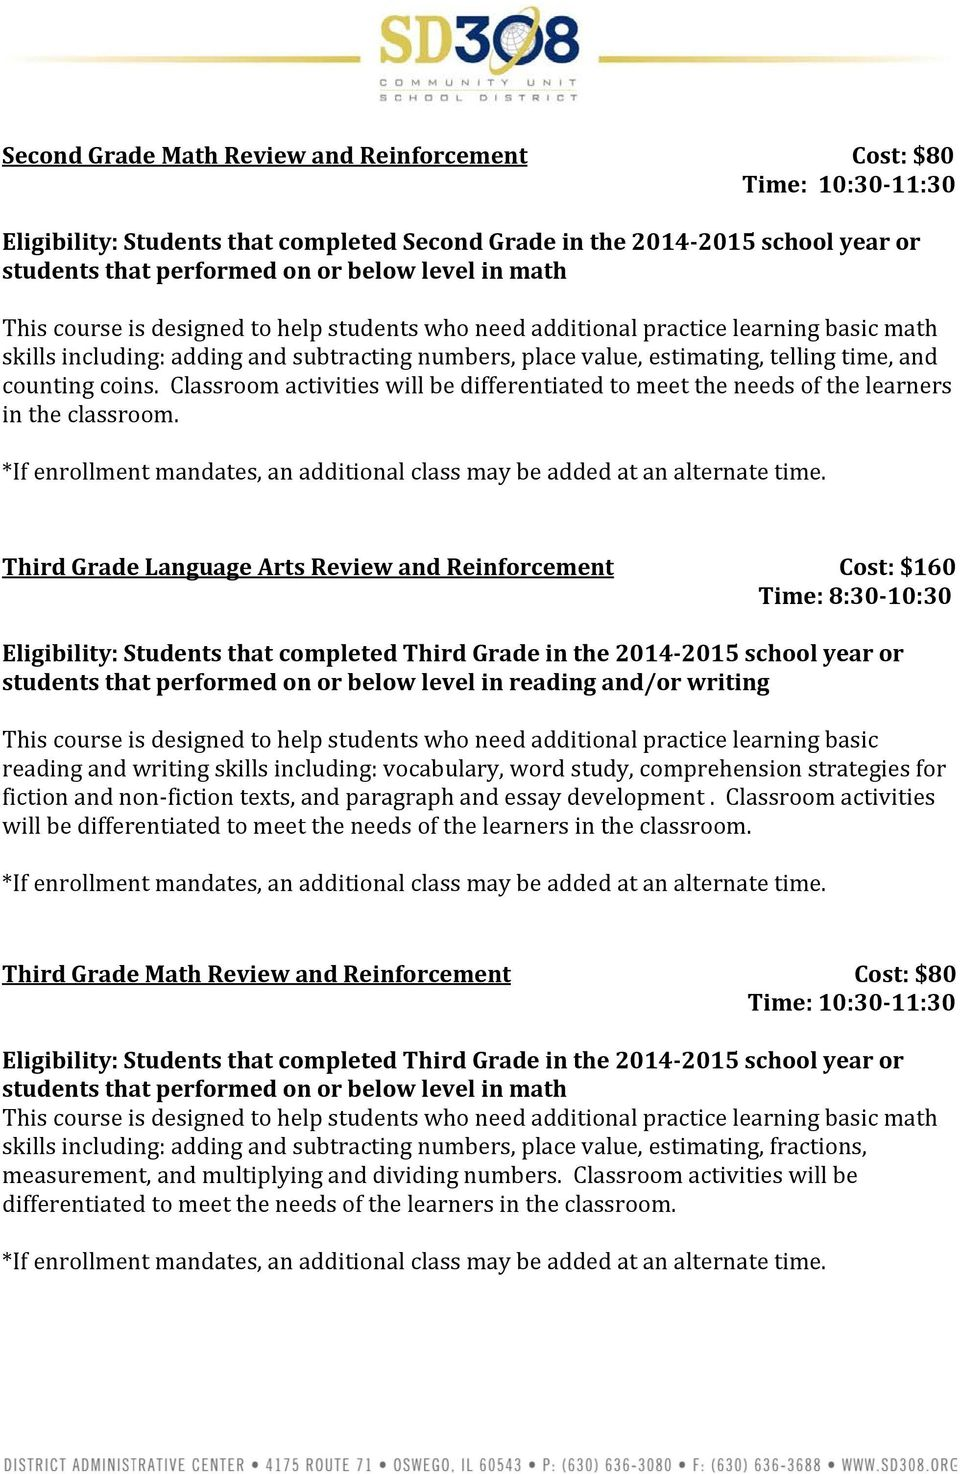 Third Grade Language Arts Review and Reinforcement Cost: $160 Eligibility: Students that completed Third Grade in the 2014-2015 school or students that performed on or below level in reading and/or